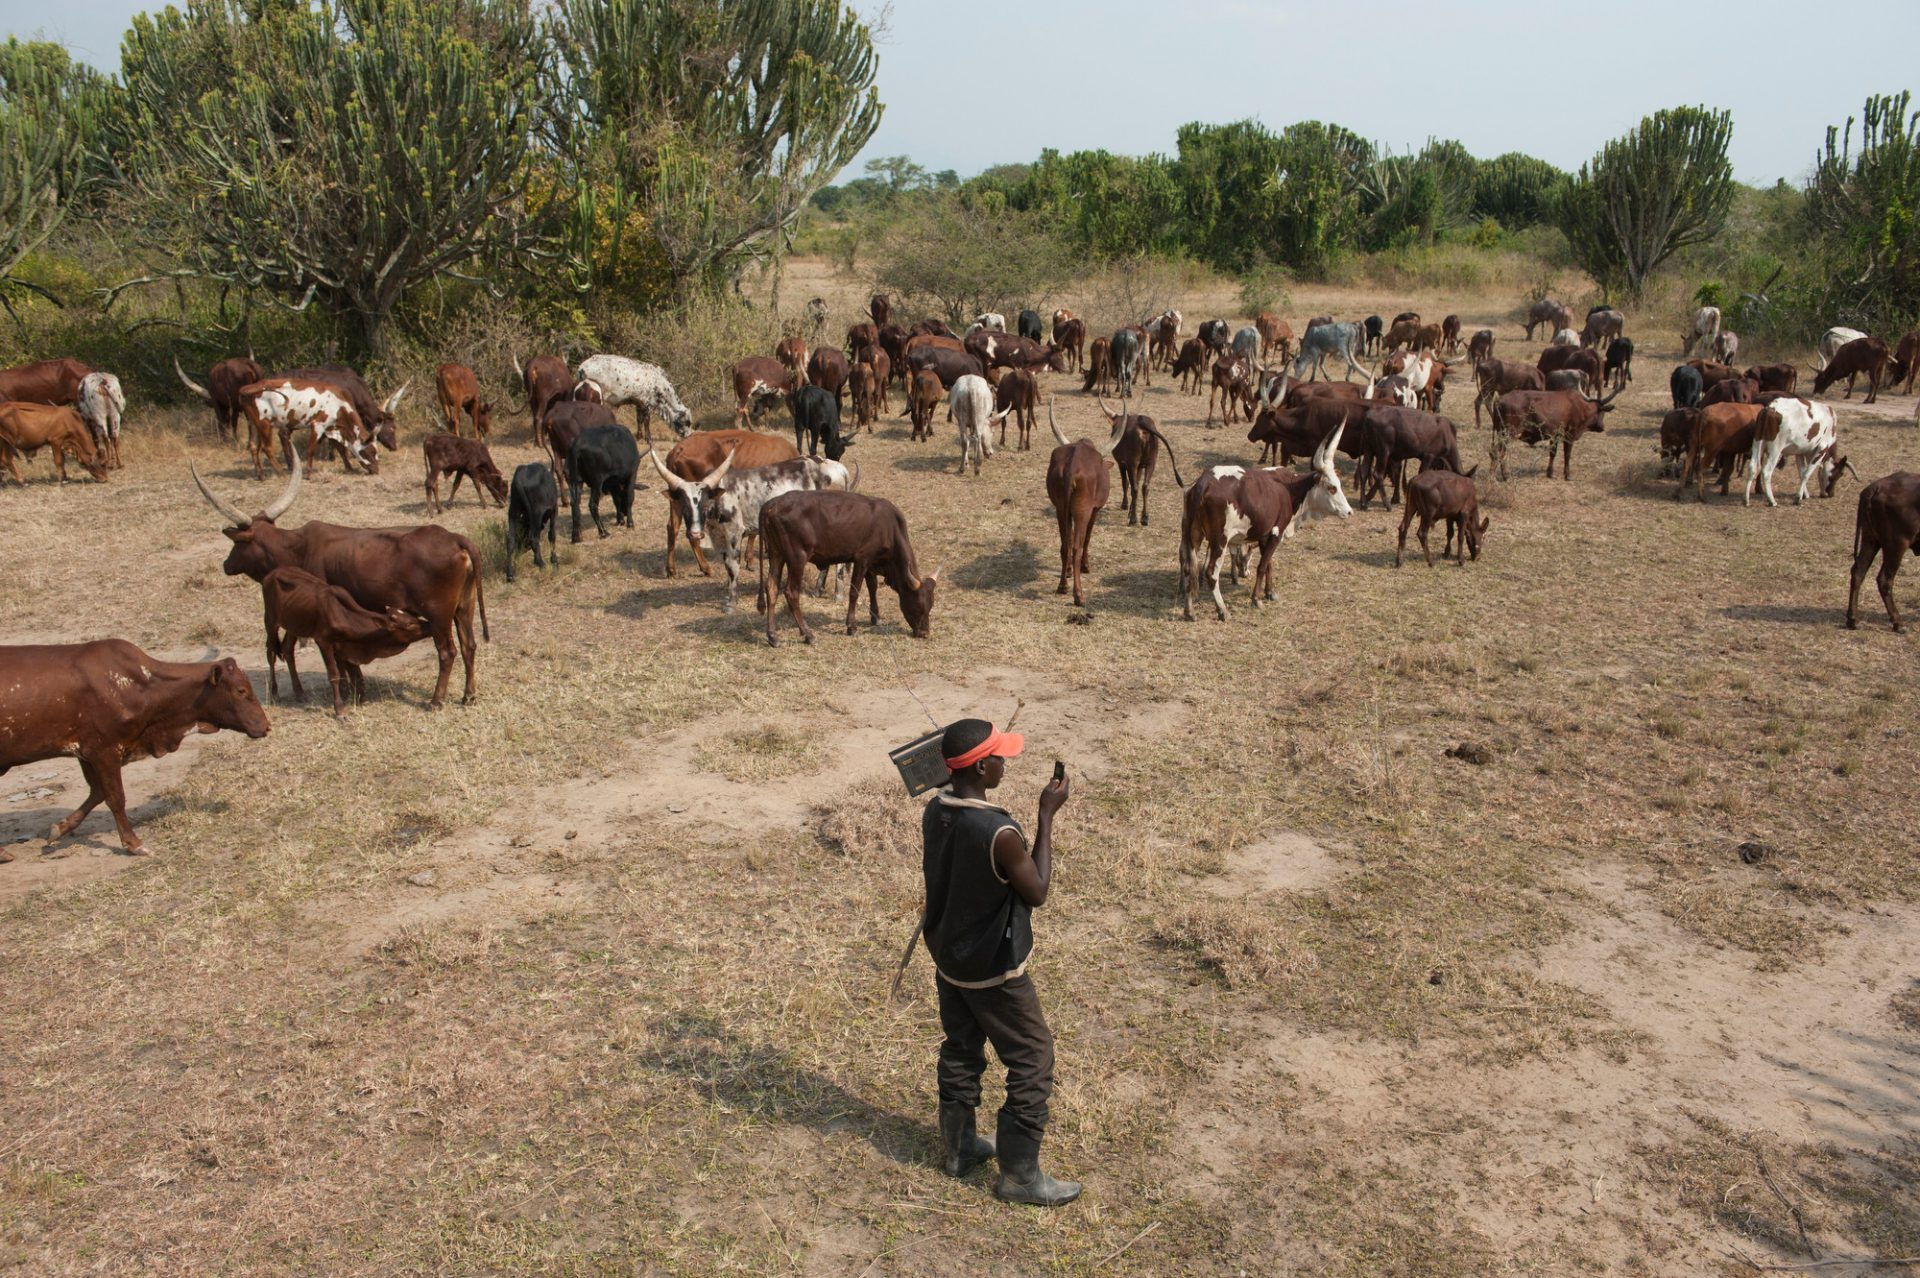 Photo: Herders graze their stock illegally in Queen Elizabeth National Park.